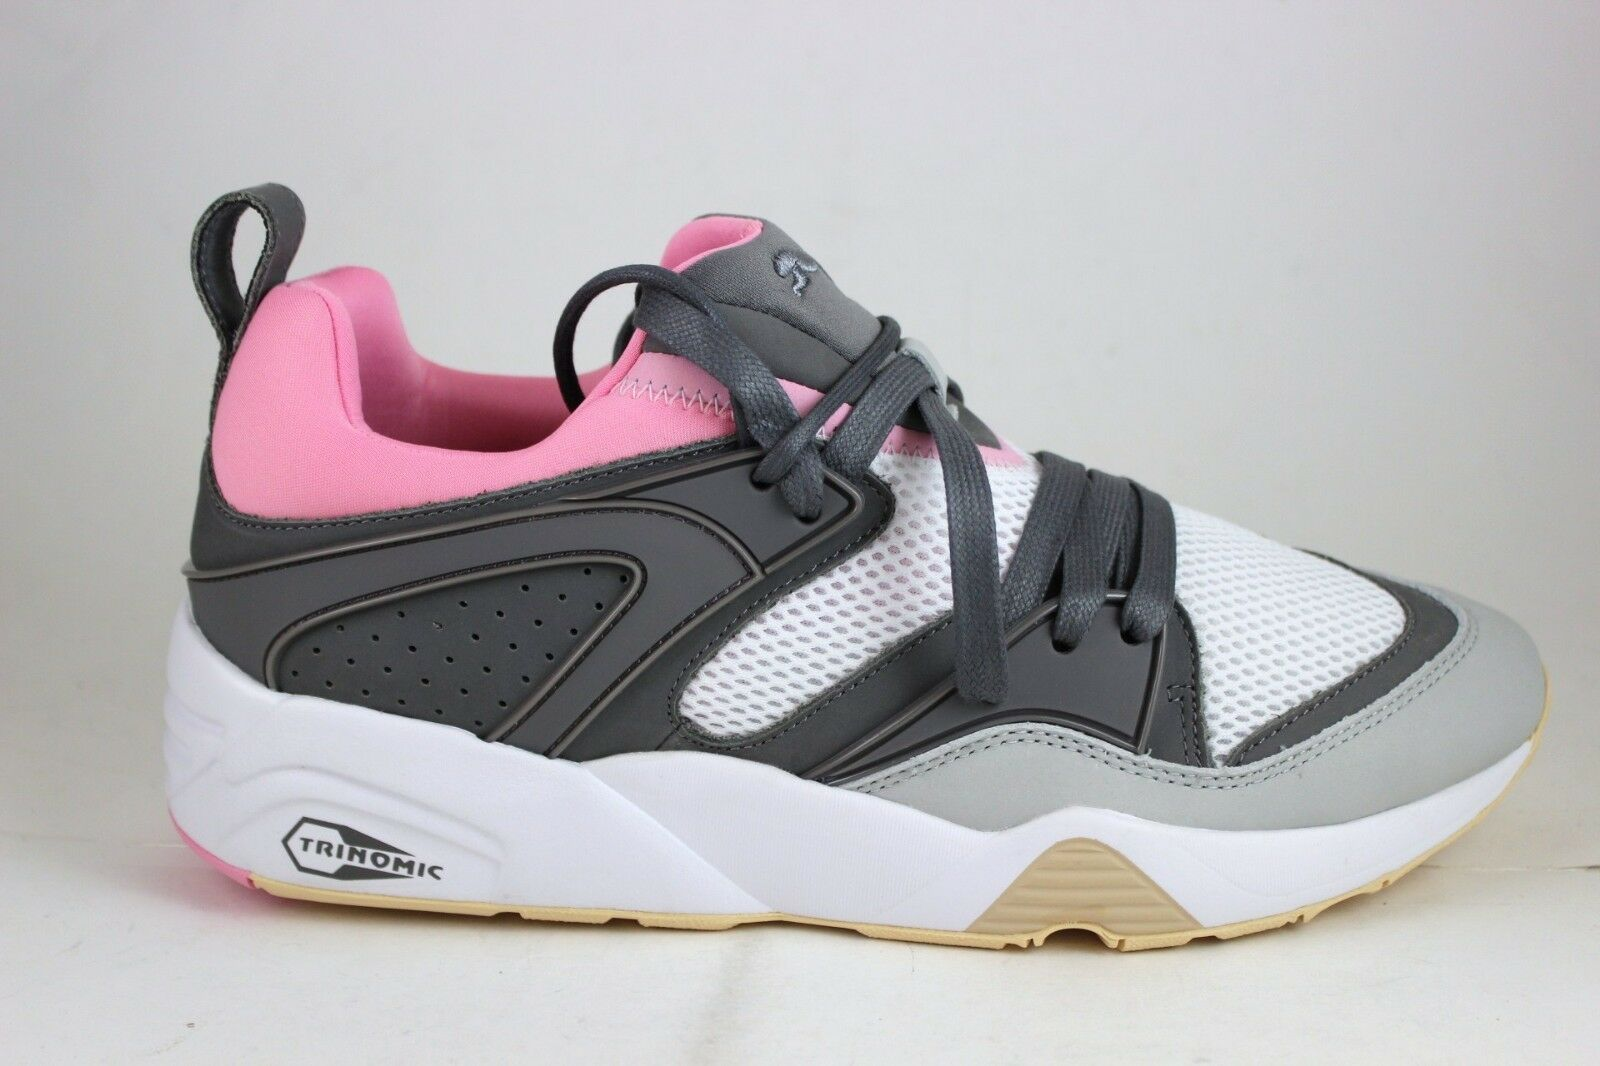 hommes Puma Blaze of Glory Solebox gris Violet Steel 364915 01 New In Box